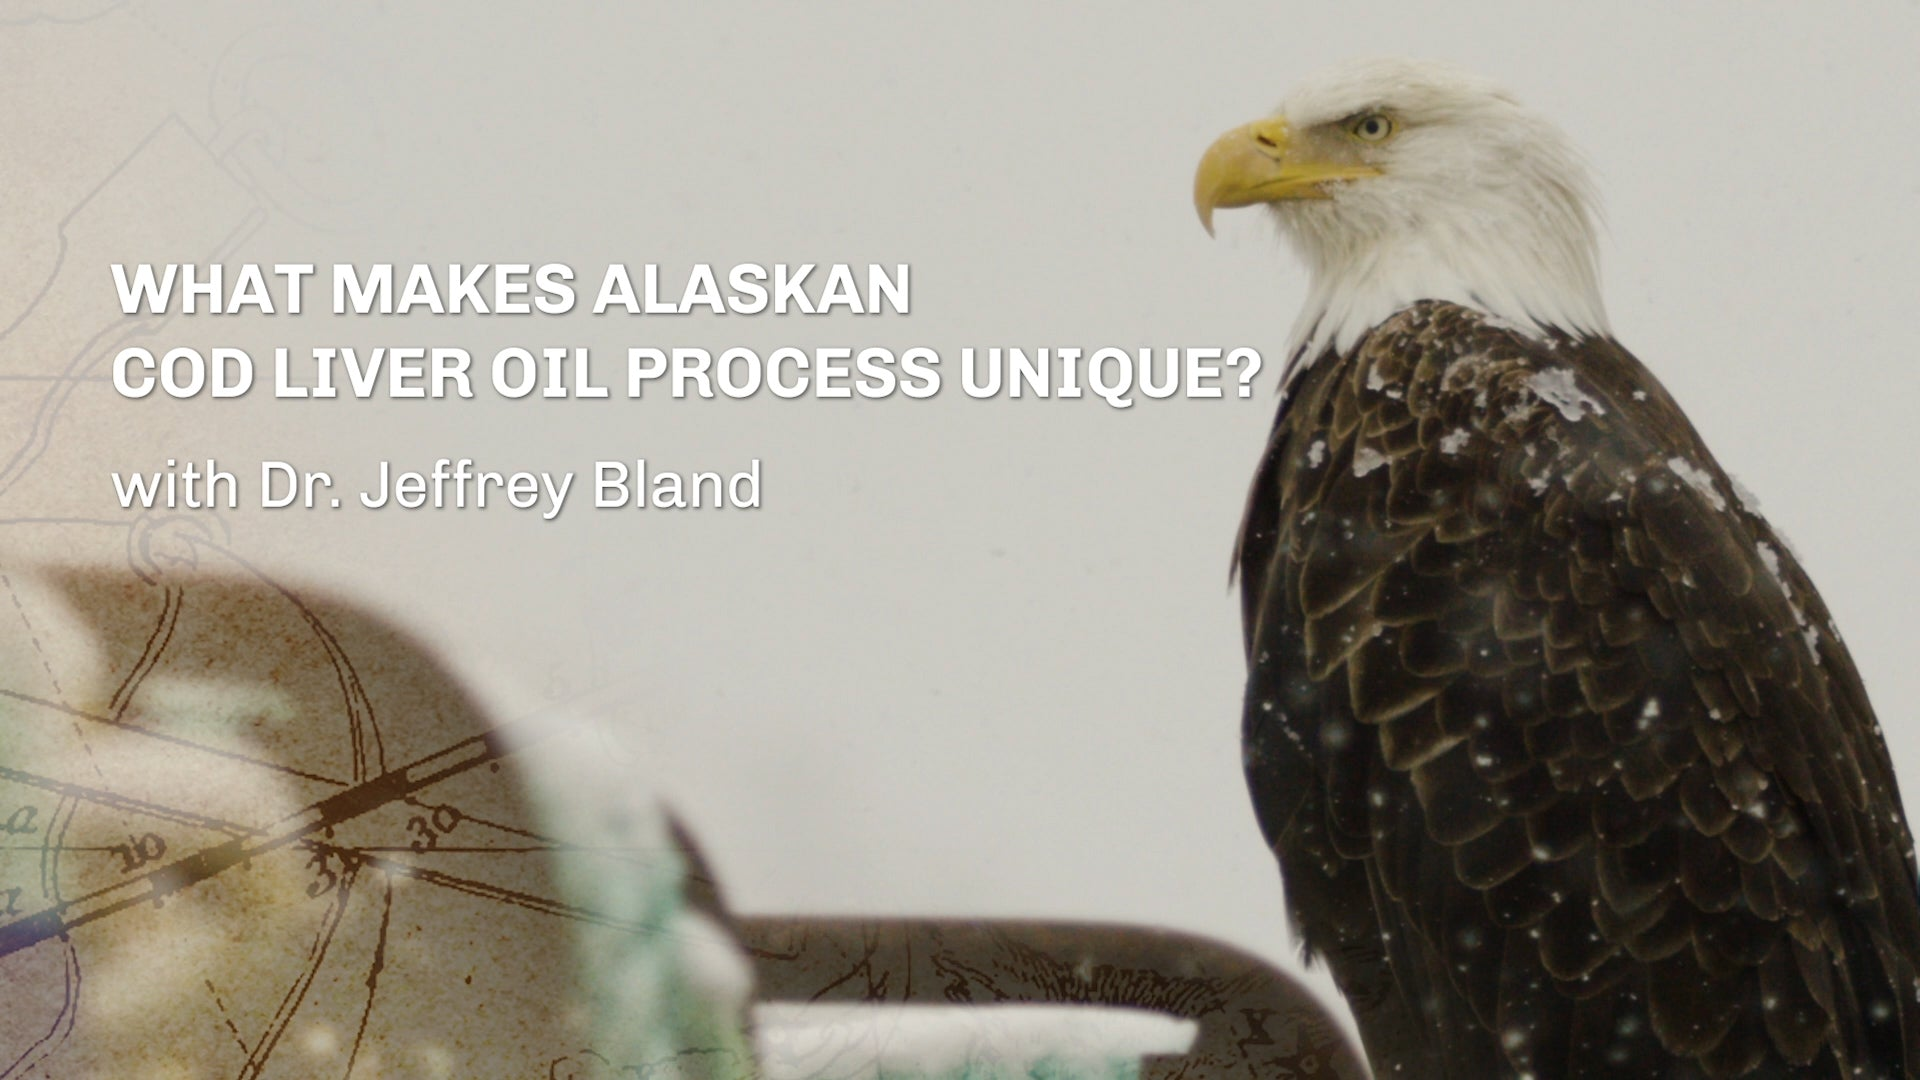 What Makes Alaskan Cod Liver Oil Process Unique? (w/ Dr. Jeffrey Bland)